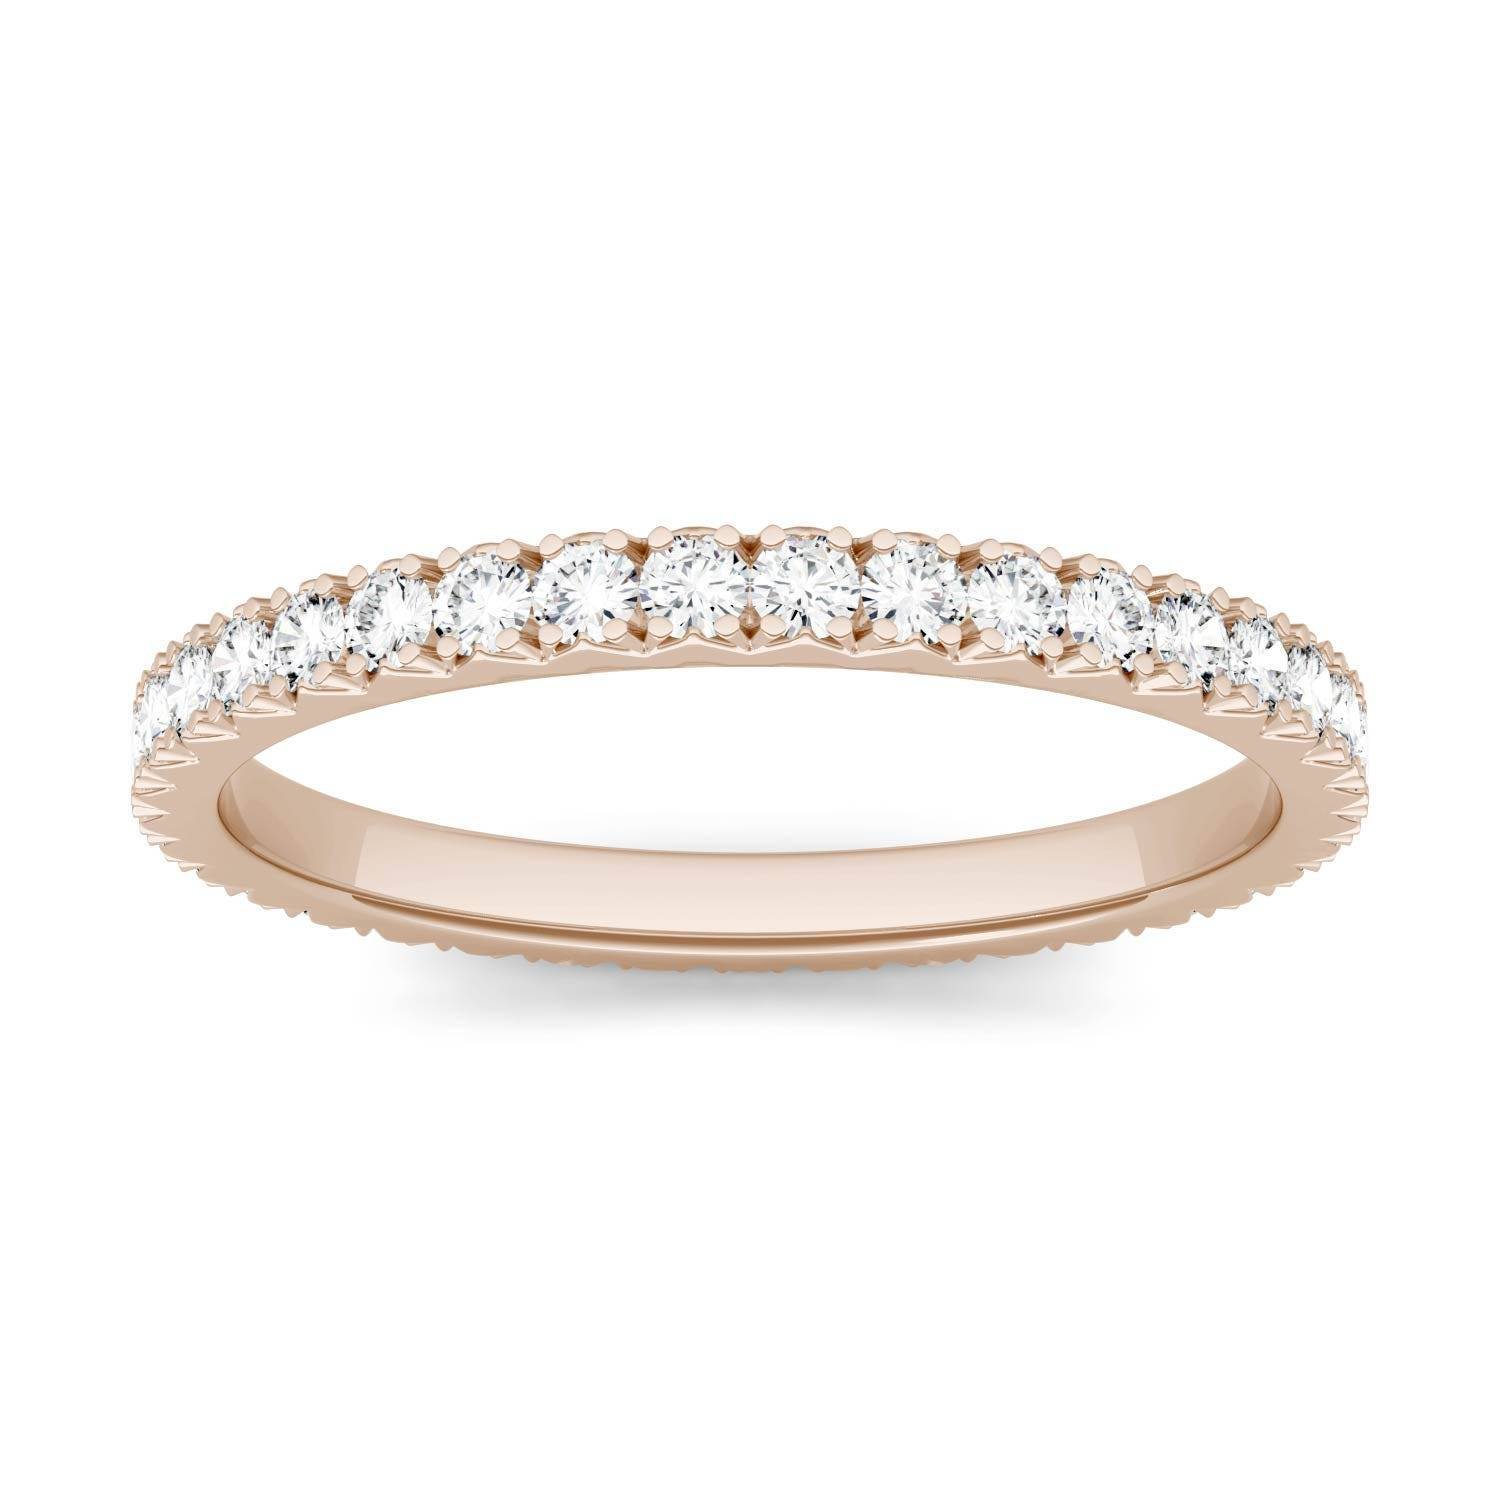 Charles & Colvard Eternity Prong Set Band Wedding Ring in 14K Rose Gold, Size: 5.5, 0.50CTW Round Forever One Moissanite Accent Stones Charles & Colvard  - Rose Gold - Size: 5.5